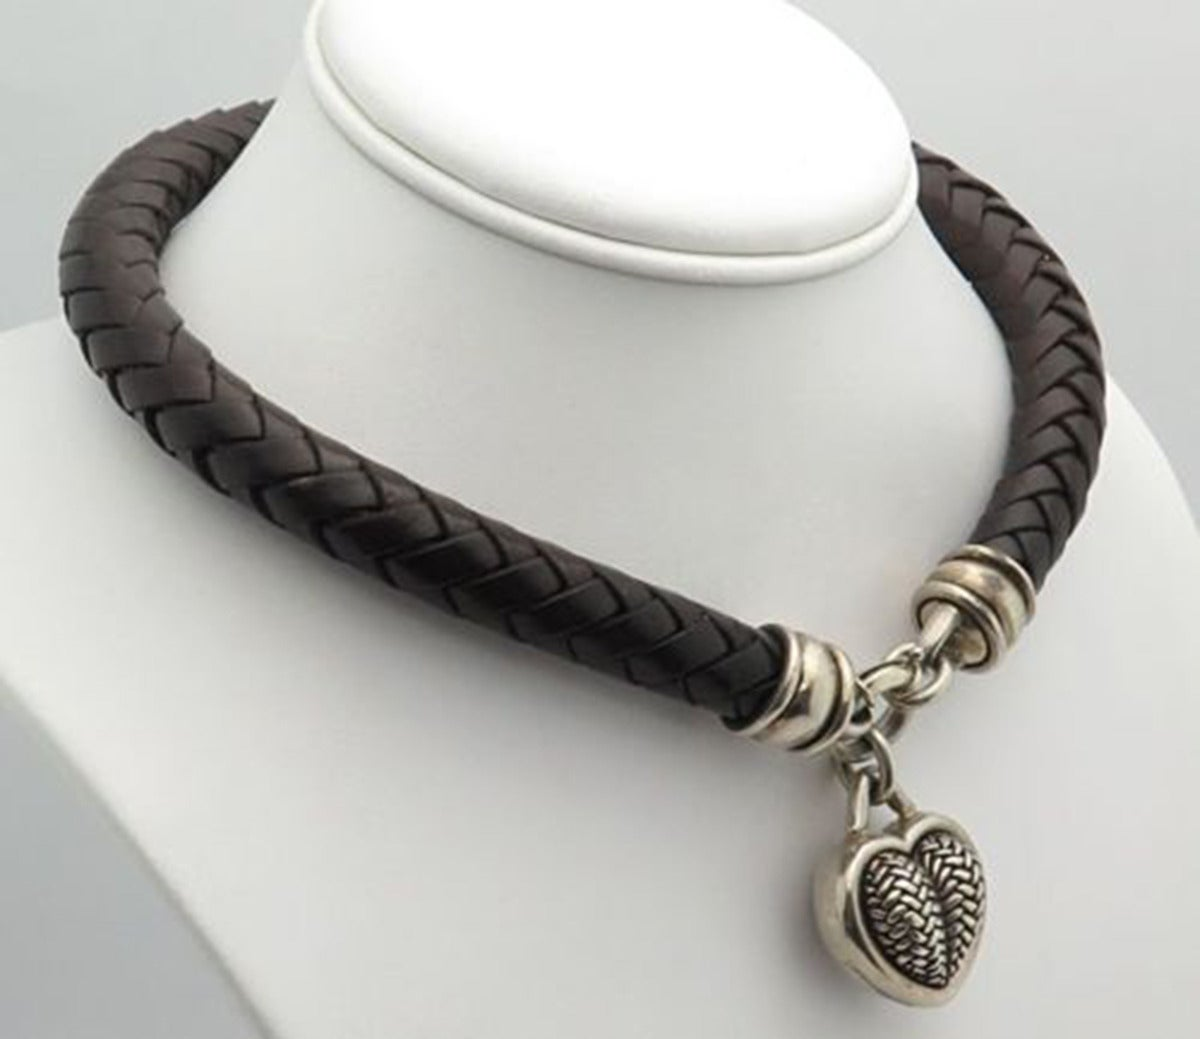 Featuring a Stunning signed BKC Sterling Silver Puffy Heart in a basket weave design, on a thick braided brown leather choker necklace, measures approx. 16